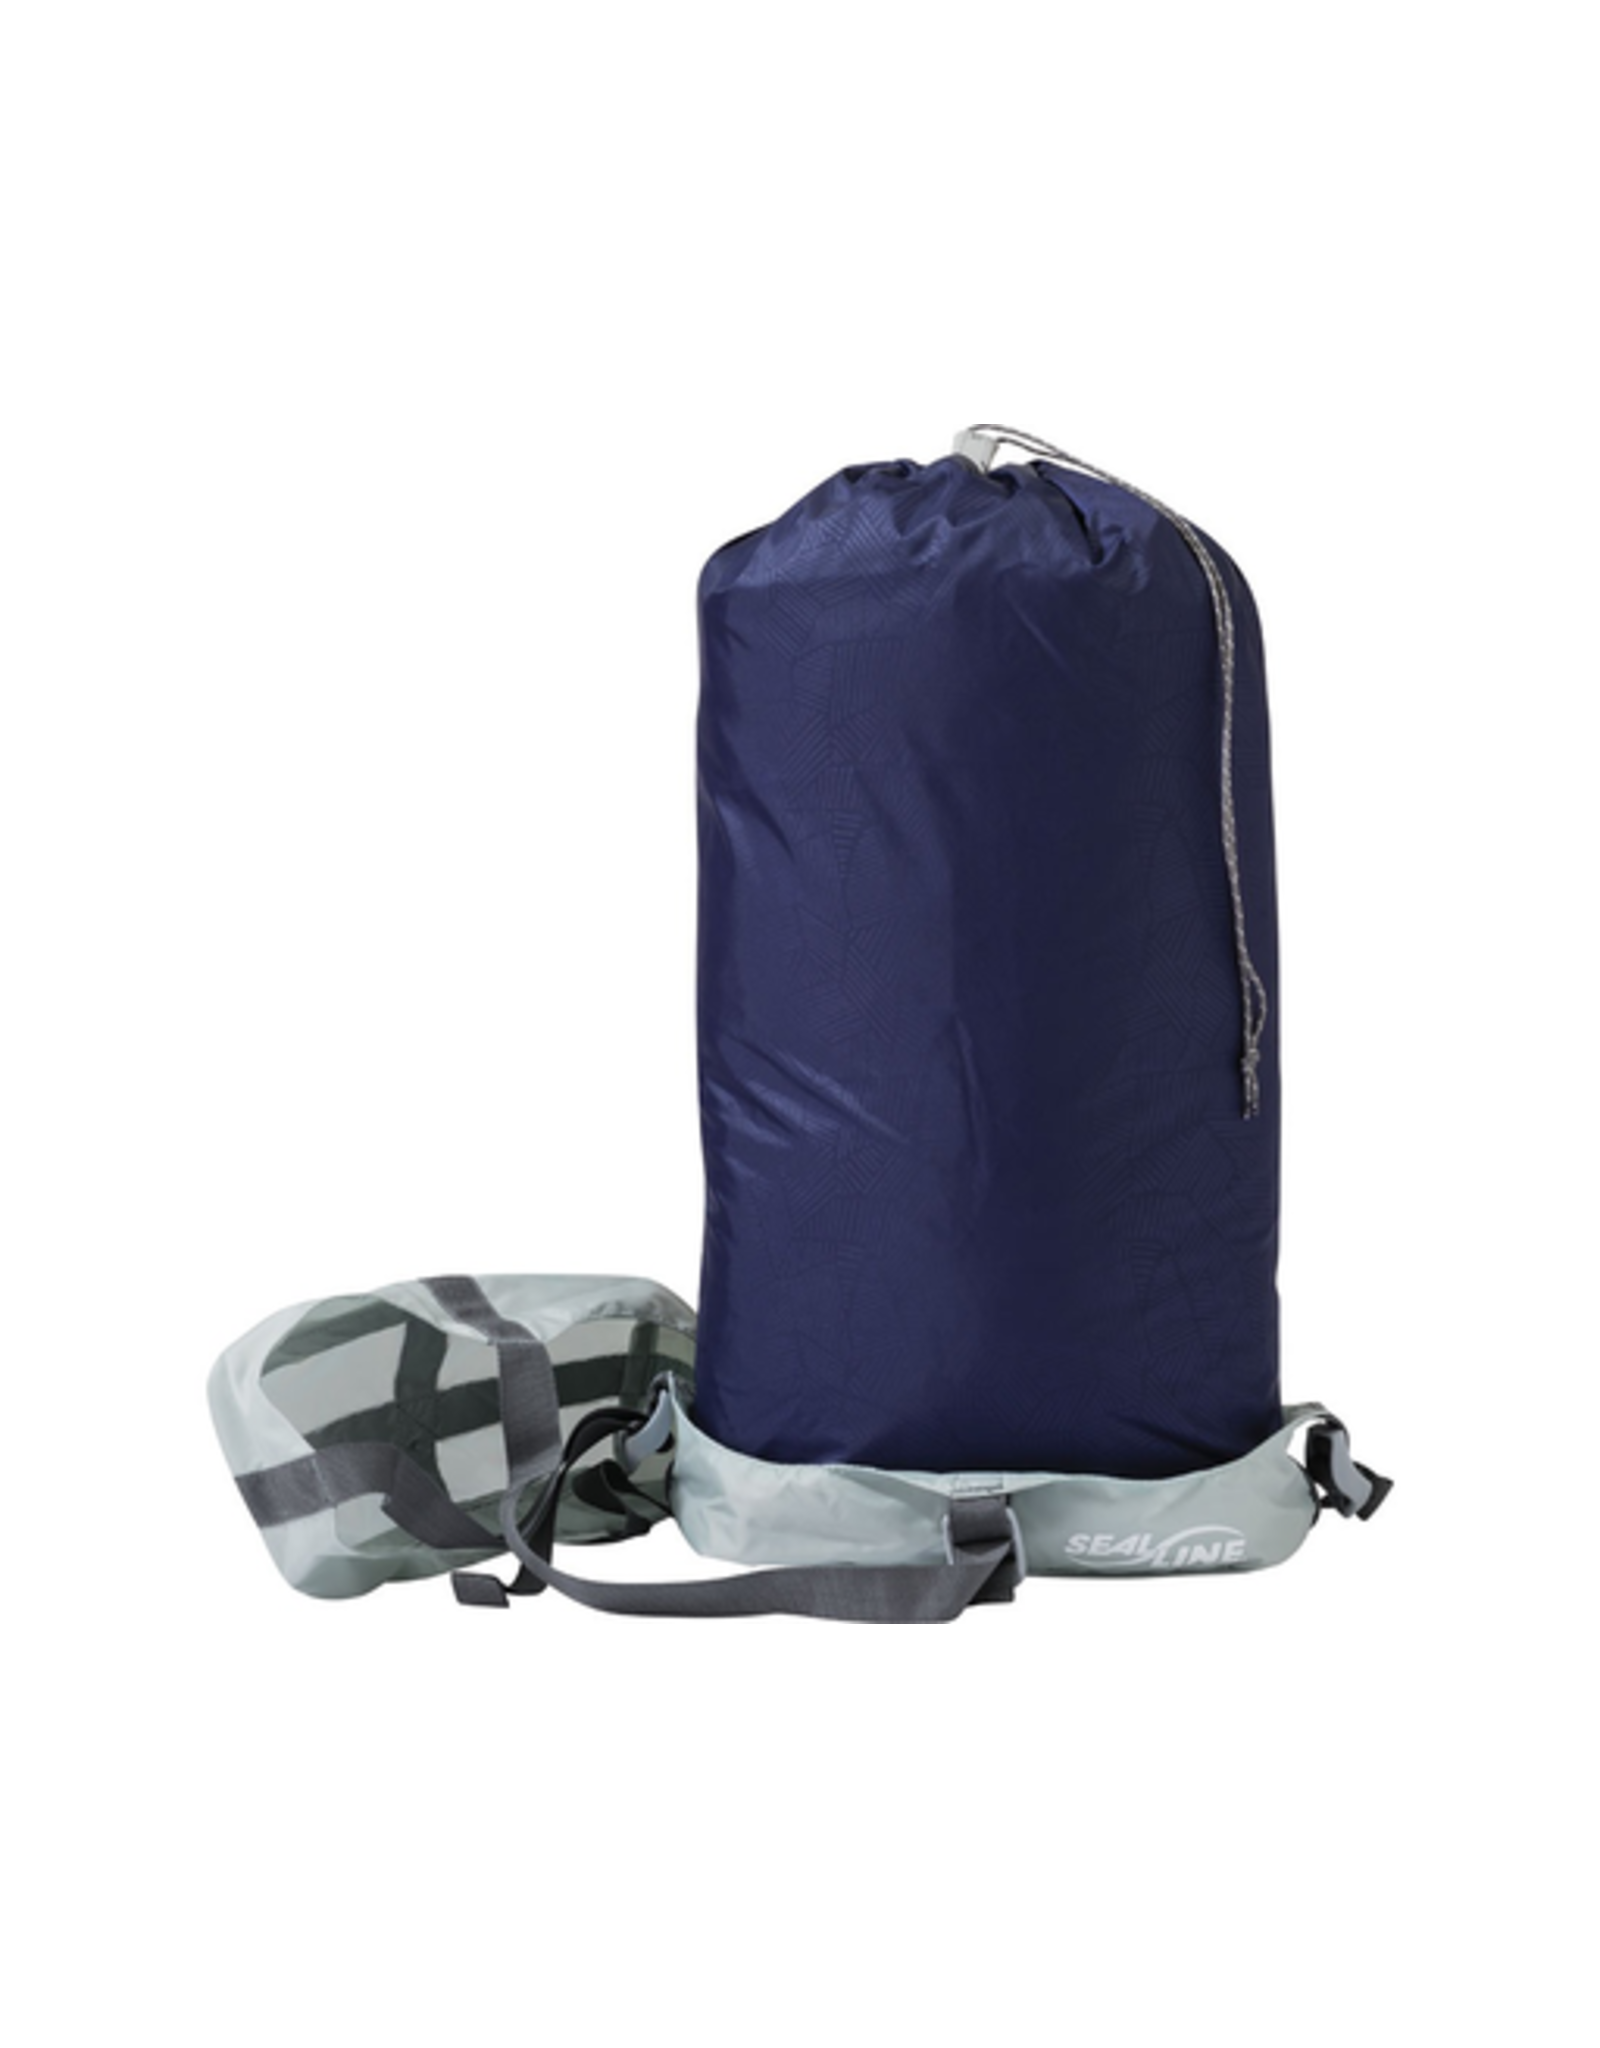 SeaLine SealLine Blocker Clinch Compression Sack 20L, Navy